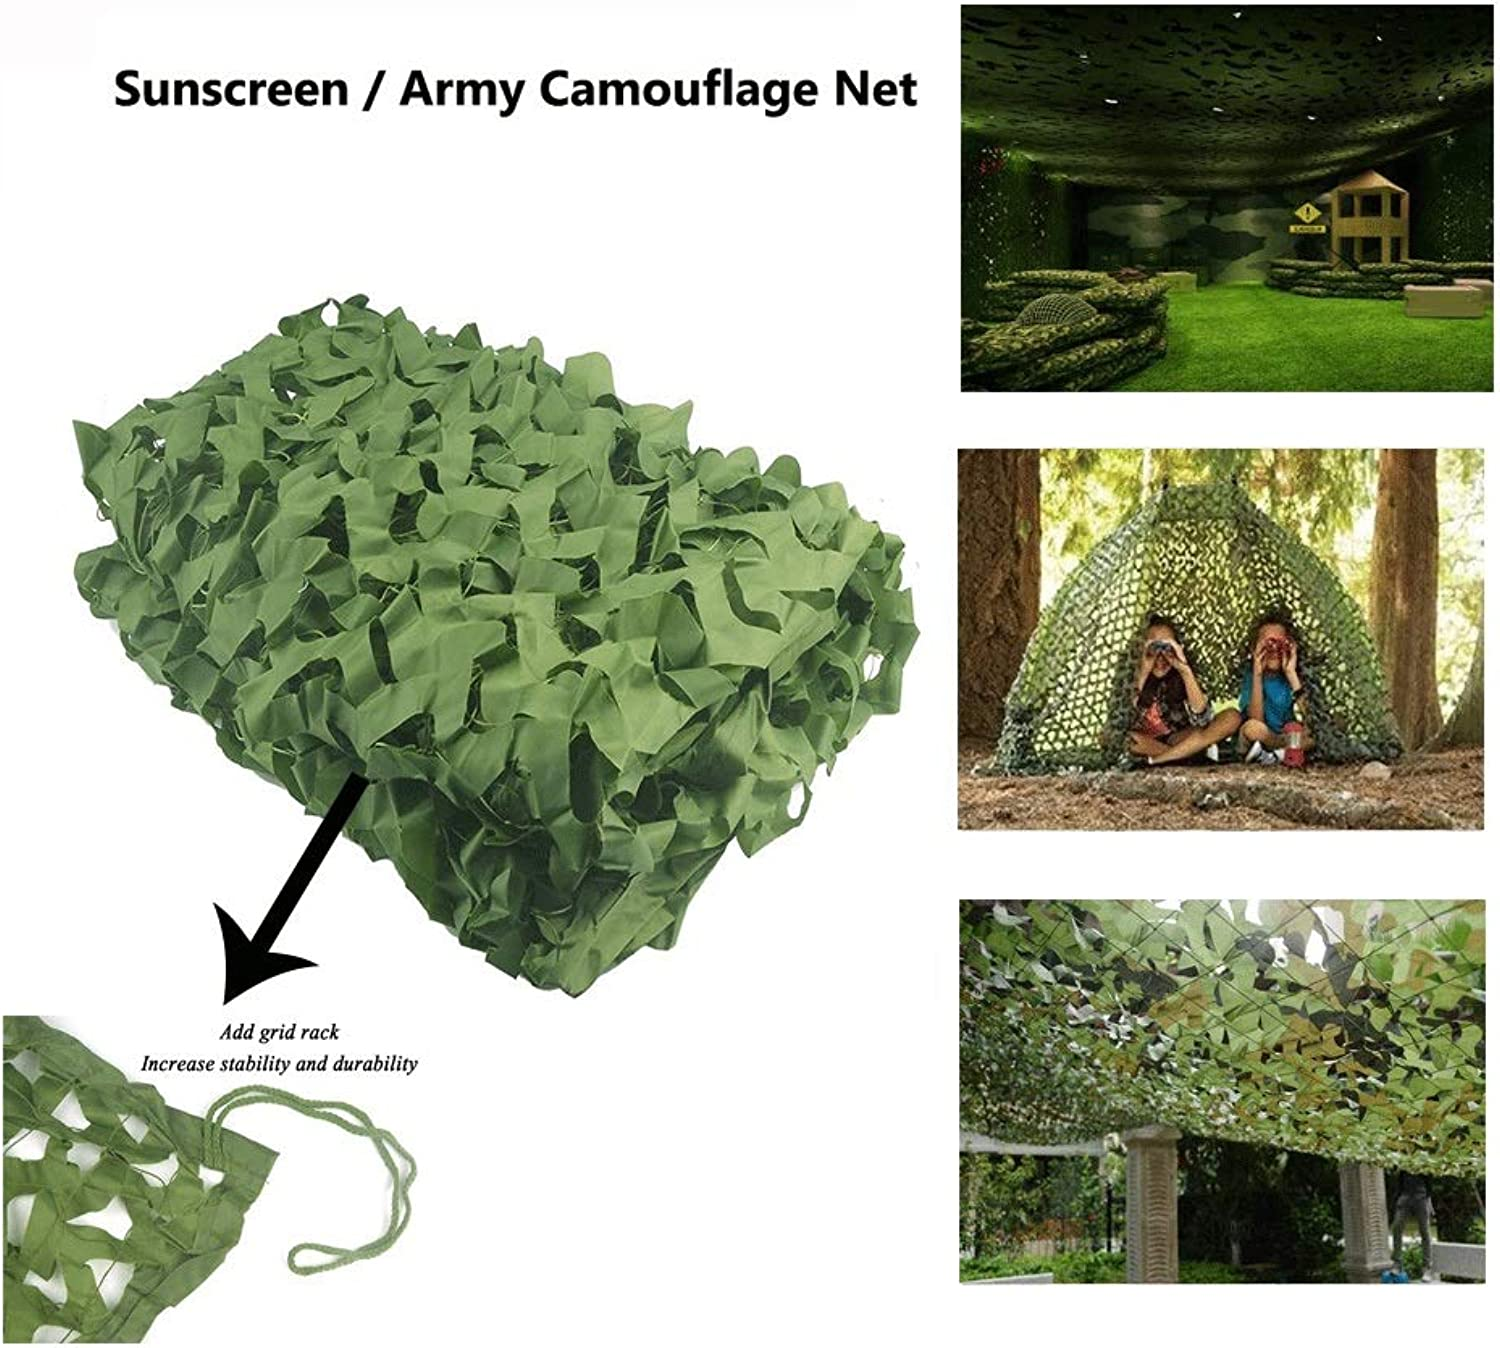 Oxford Camo Netting,Blinds Awning Camouflage Army Green Net Sunscreen Shade Tarpaulin Sunshade Tent Hunting Hidden Desert Cover Woodland Military Mesh,for Kid Camping Shooting Fishing Decoration